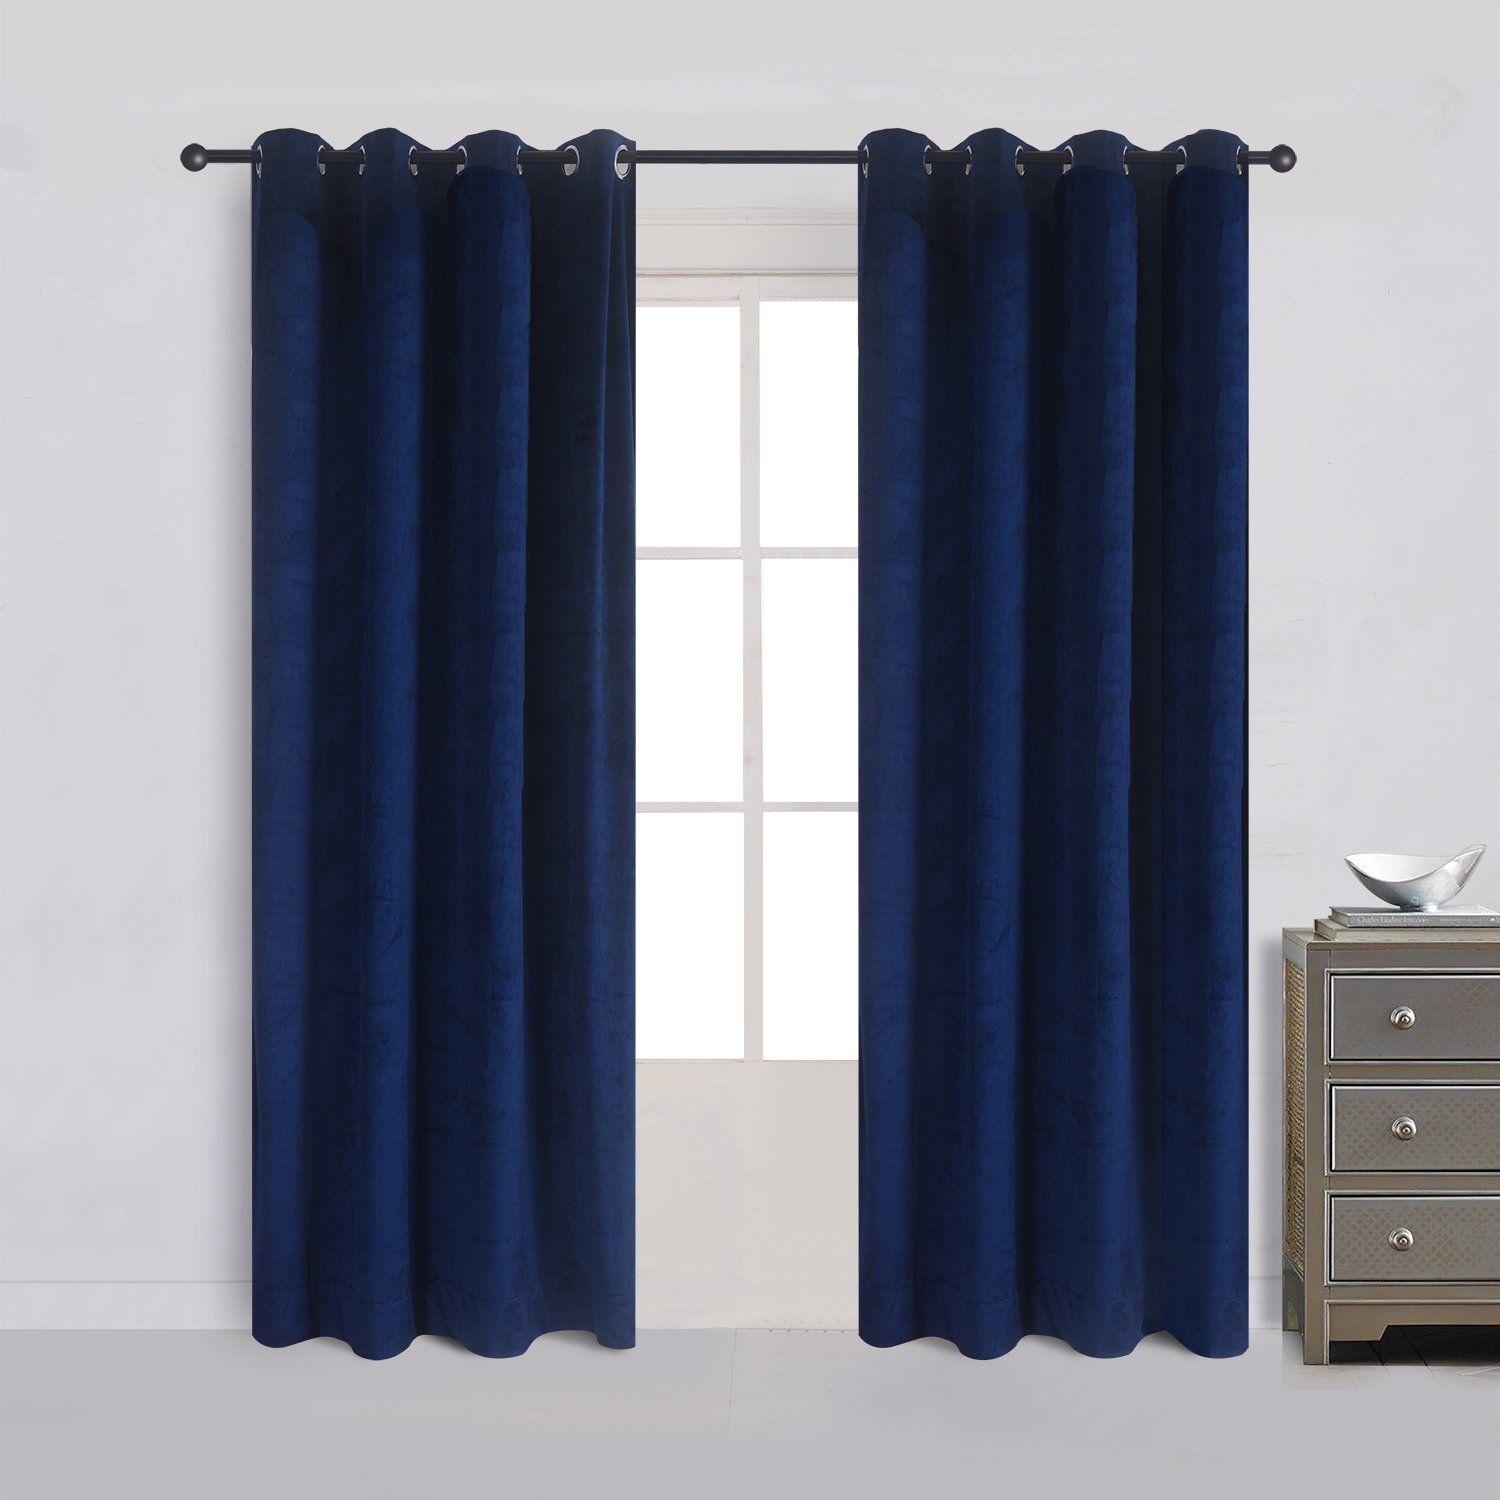 Cherry Home Luxury Velvet Blackout Curtains Panels With Grommet Draperies Eyelet 52Wx72L Inch Navy Royal Blue, 2 Panels for Theater,Bedroom, Living Room and Hotel